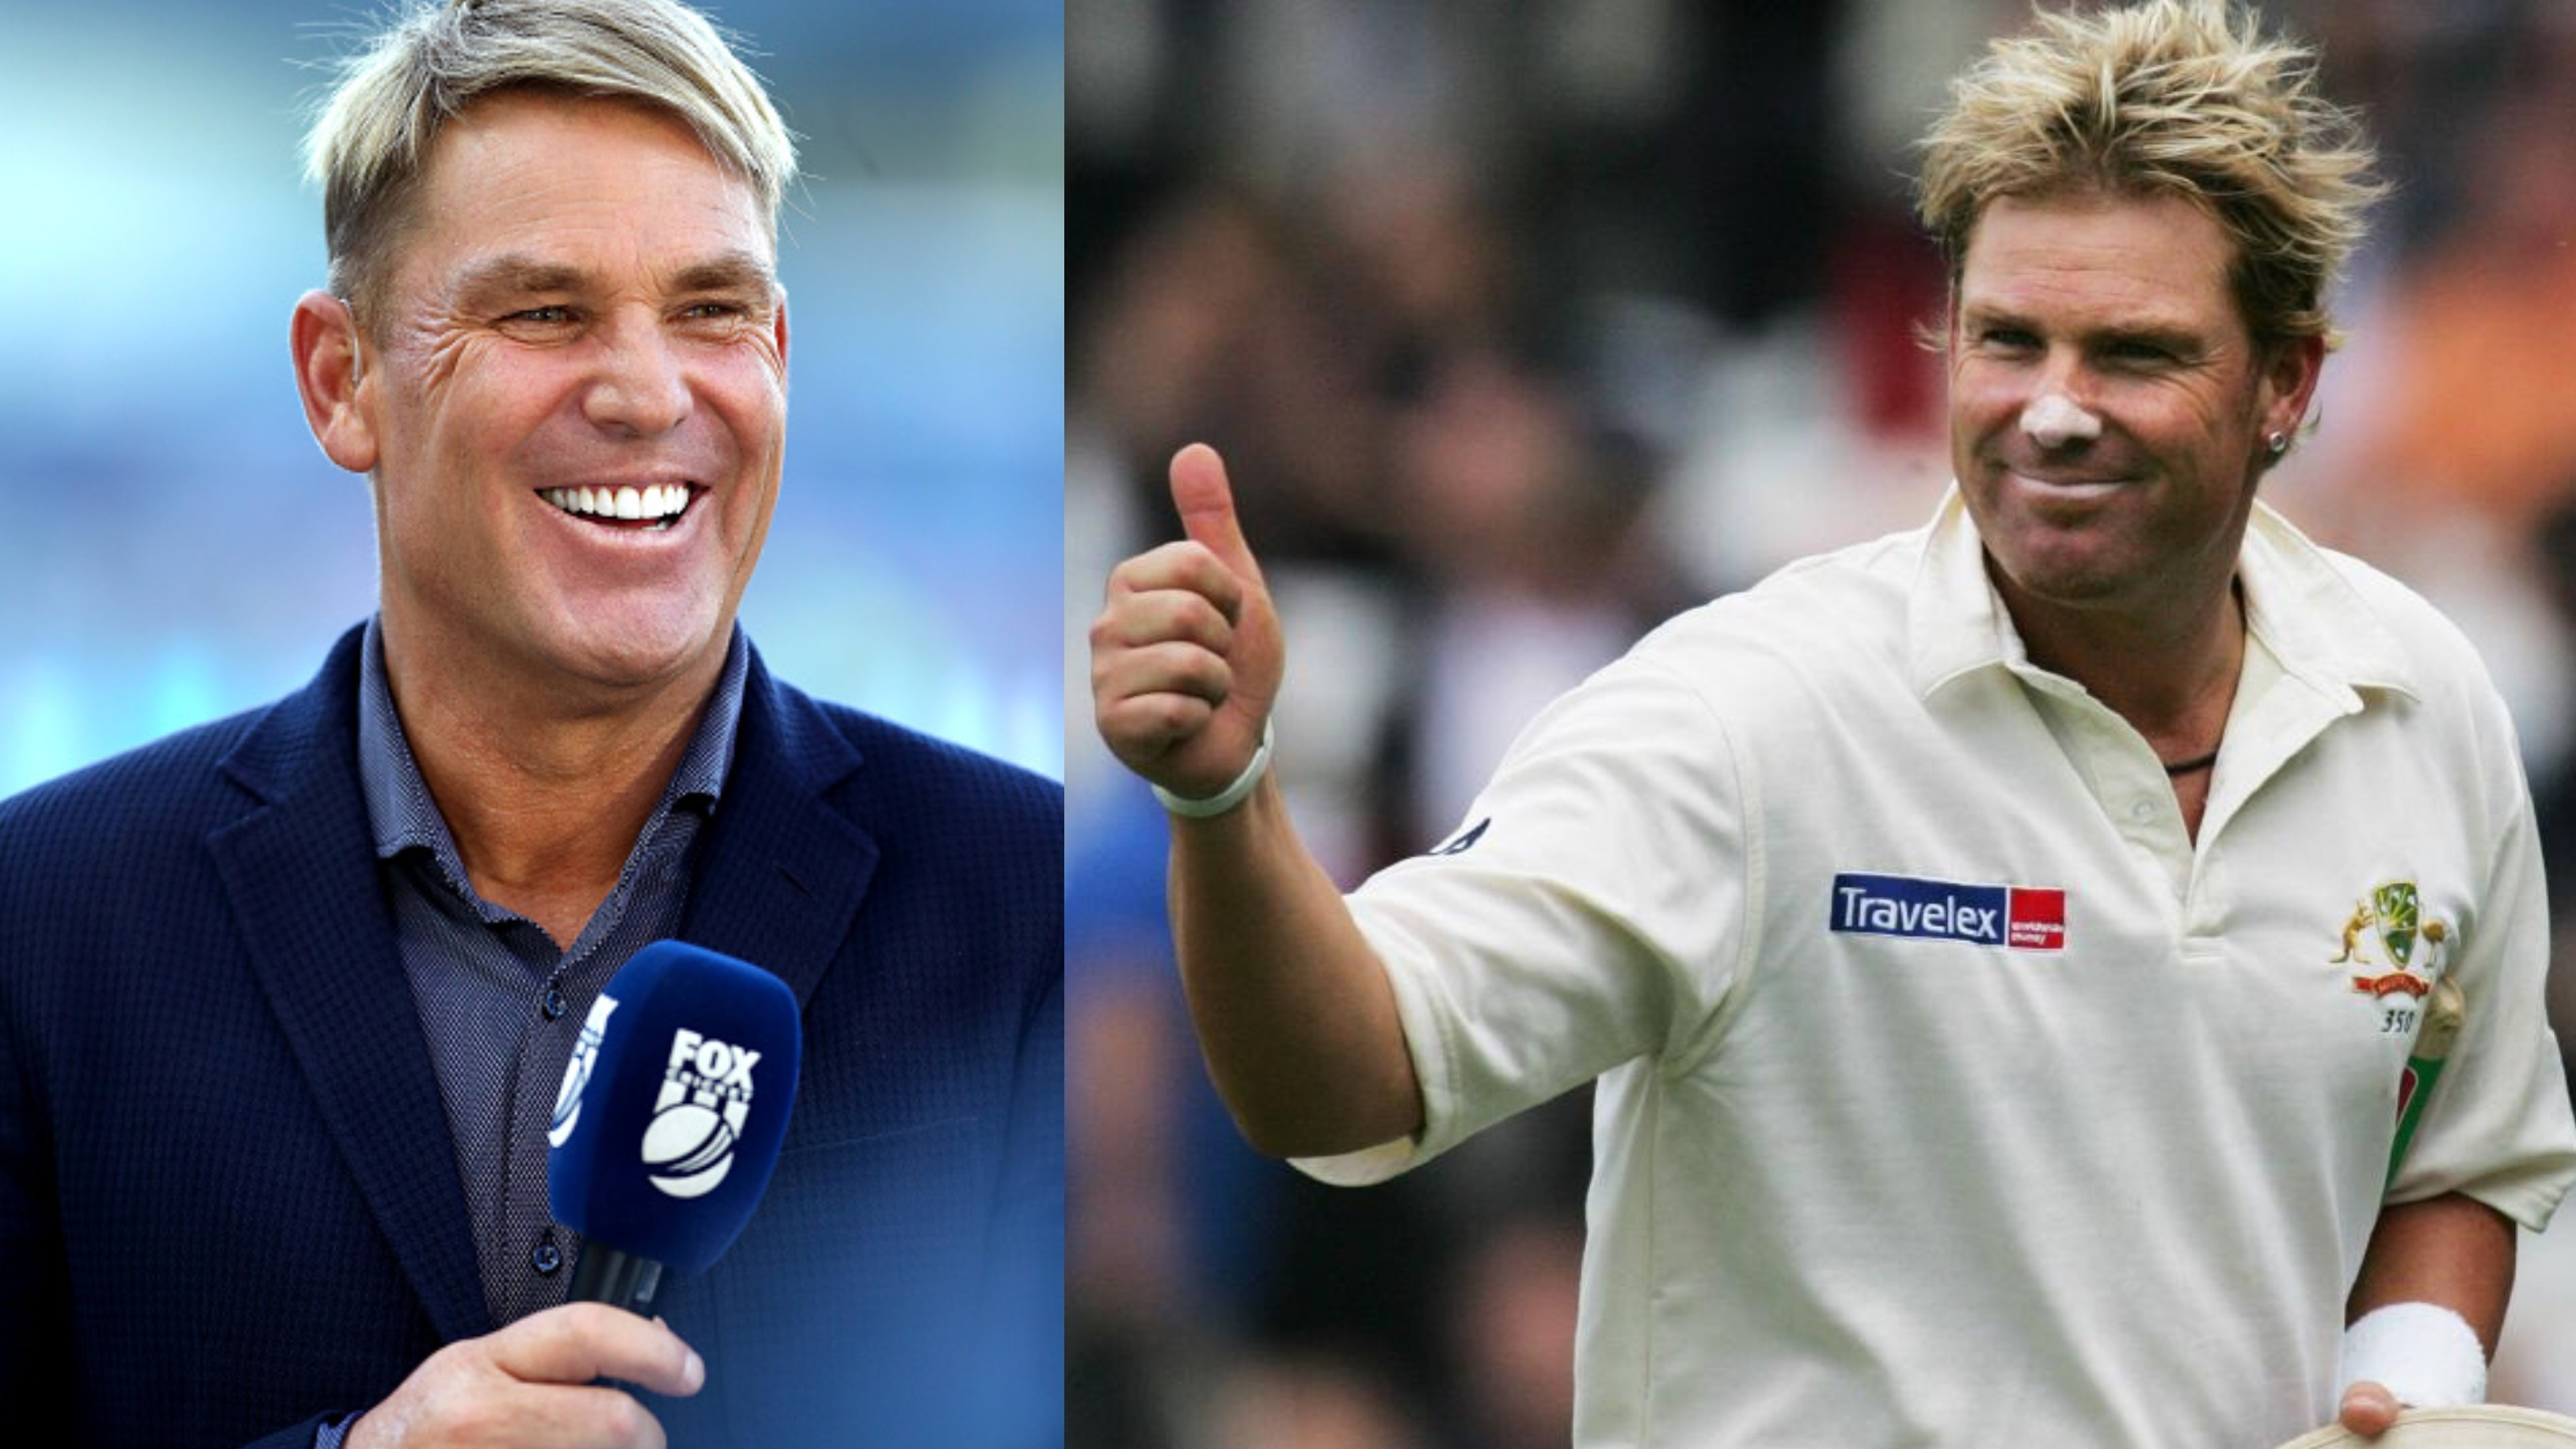 WATCH - Shane Warne talks about his favorite memories from the Ashes series